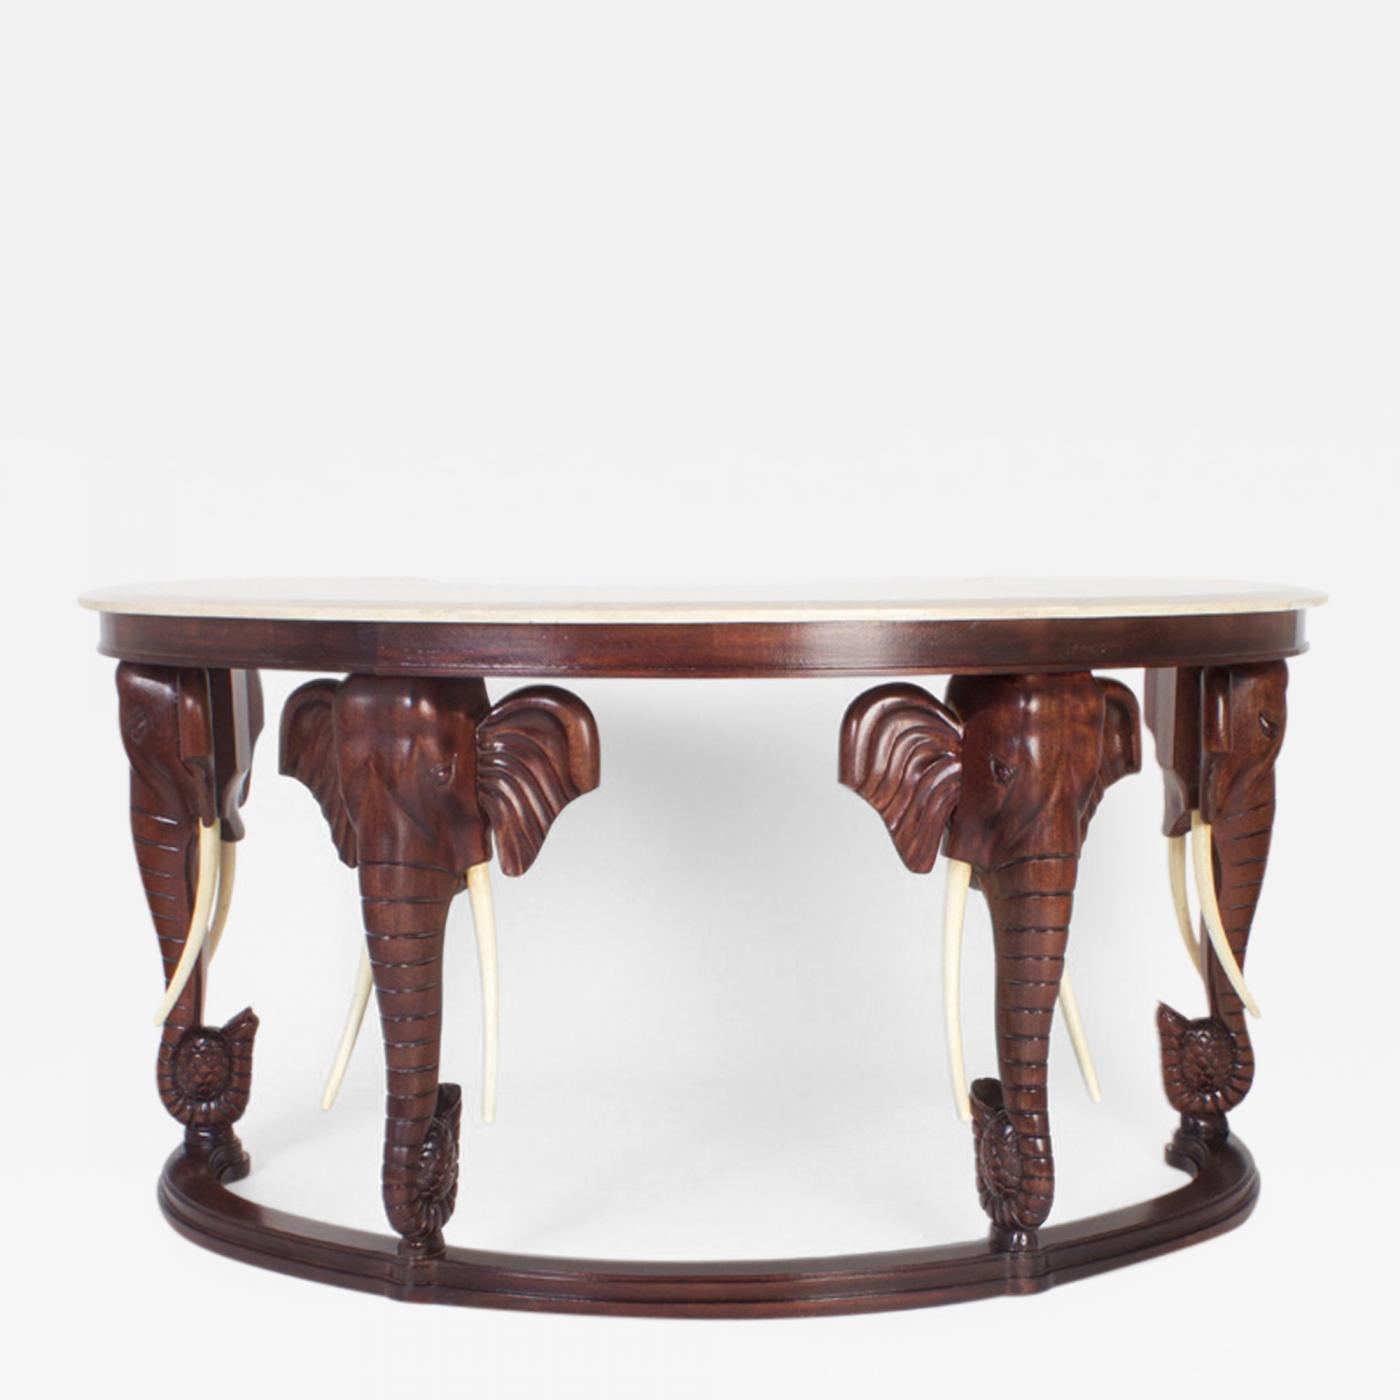 Bon ... Maitland Smith Desk With Elephant Motif. Tap To Expand